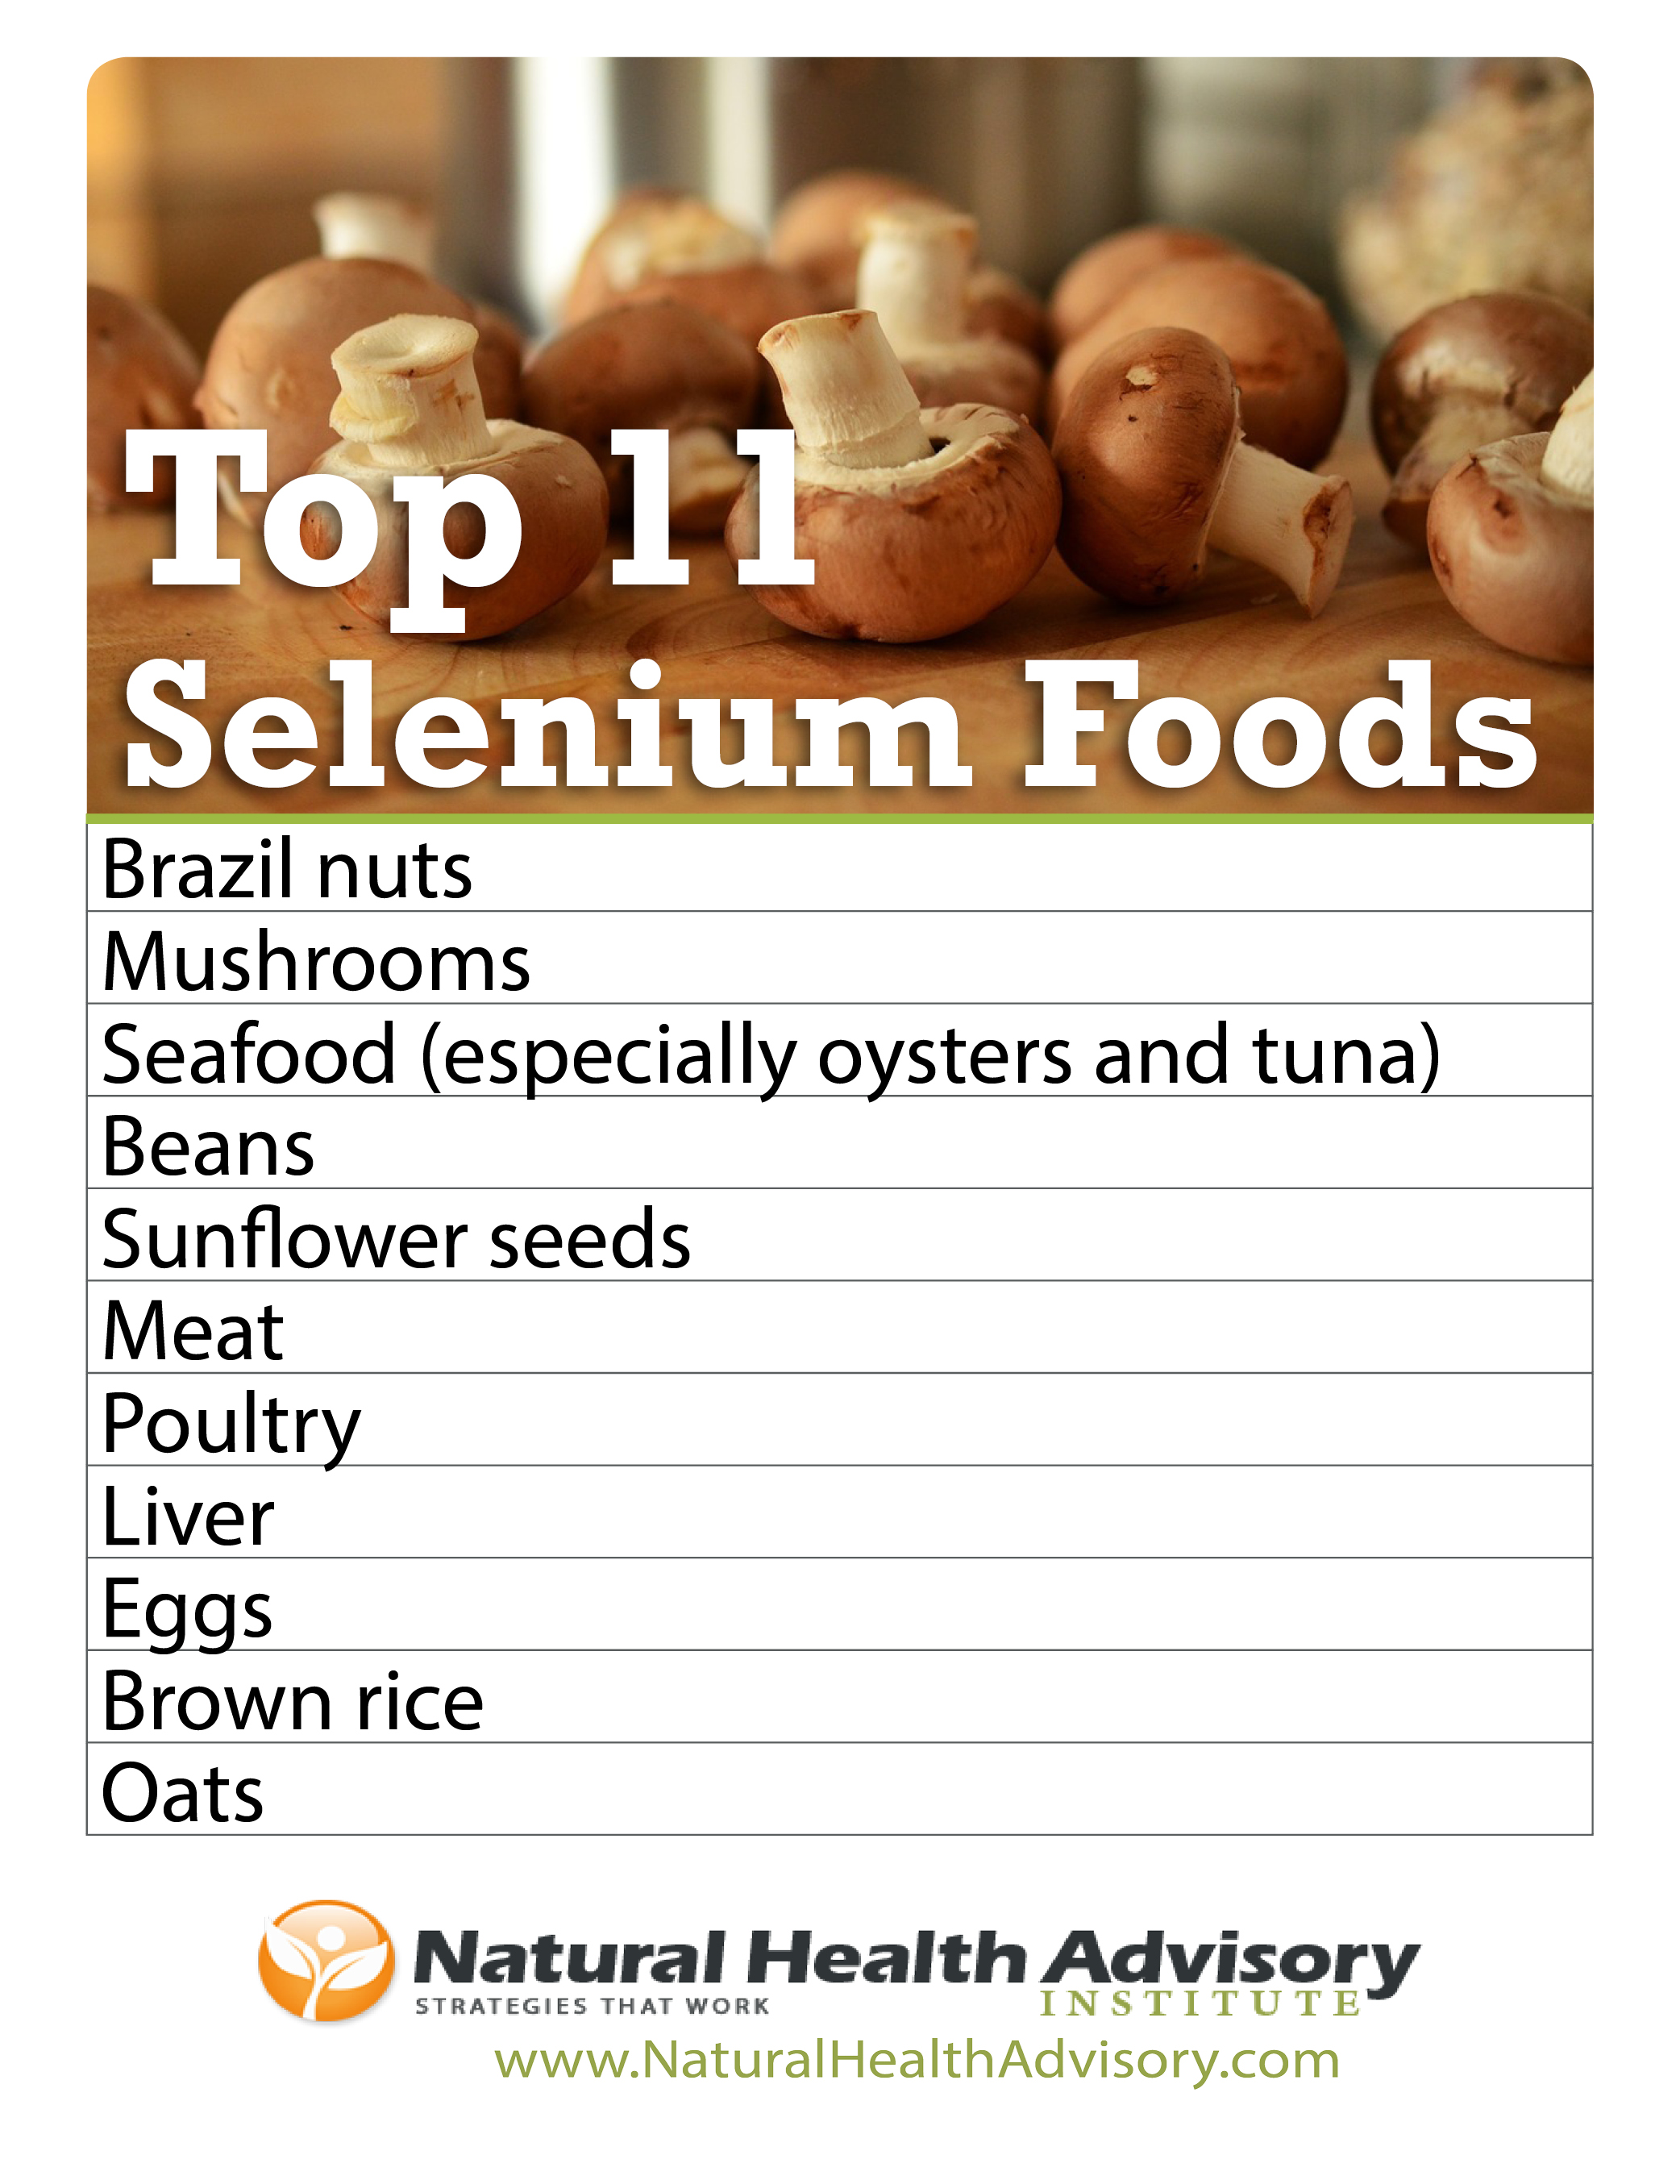 Top 11 Selenium Foods: Boost Your Intake of This Essential Nutrient